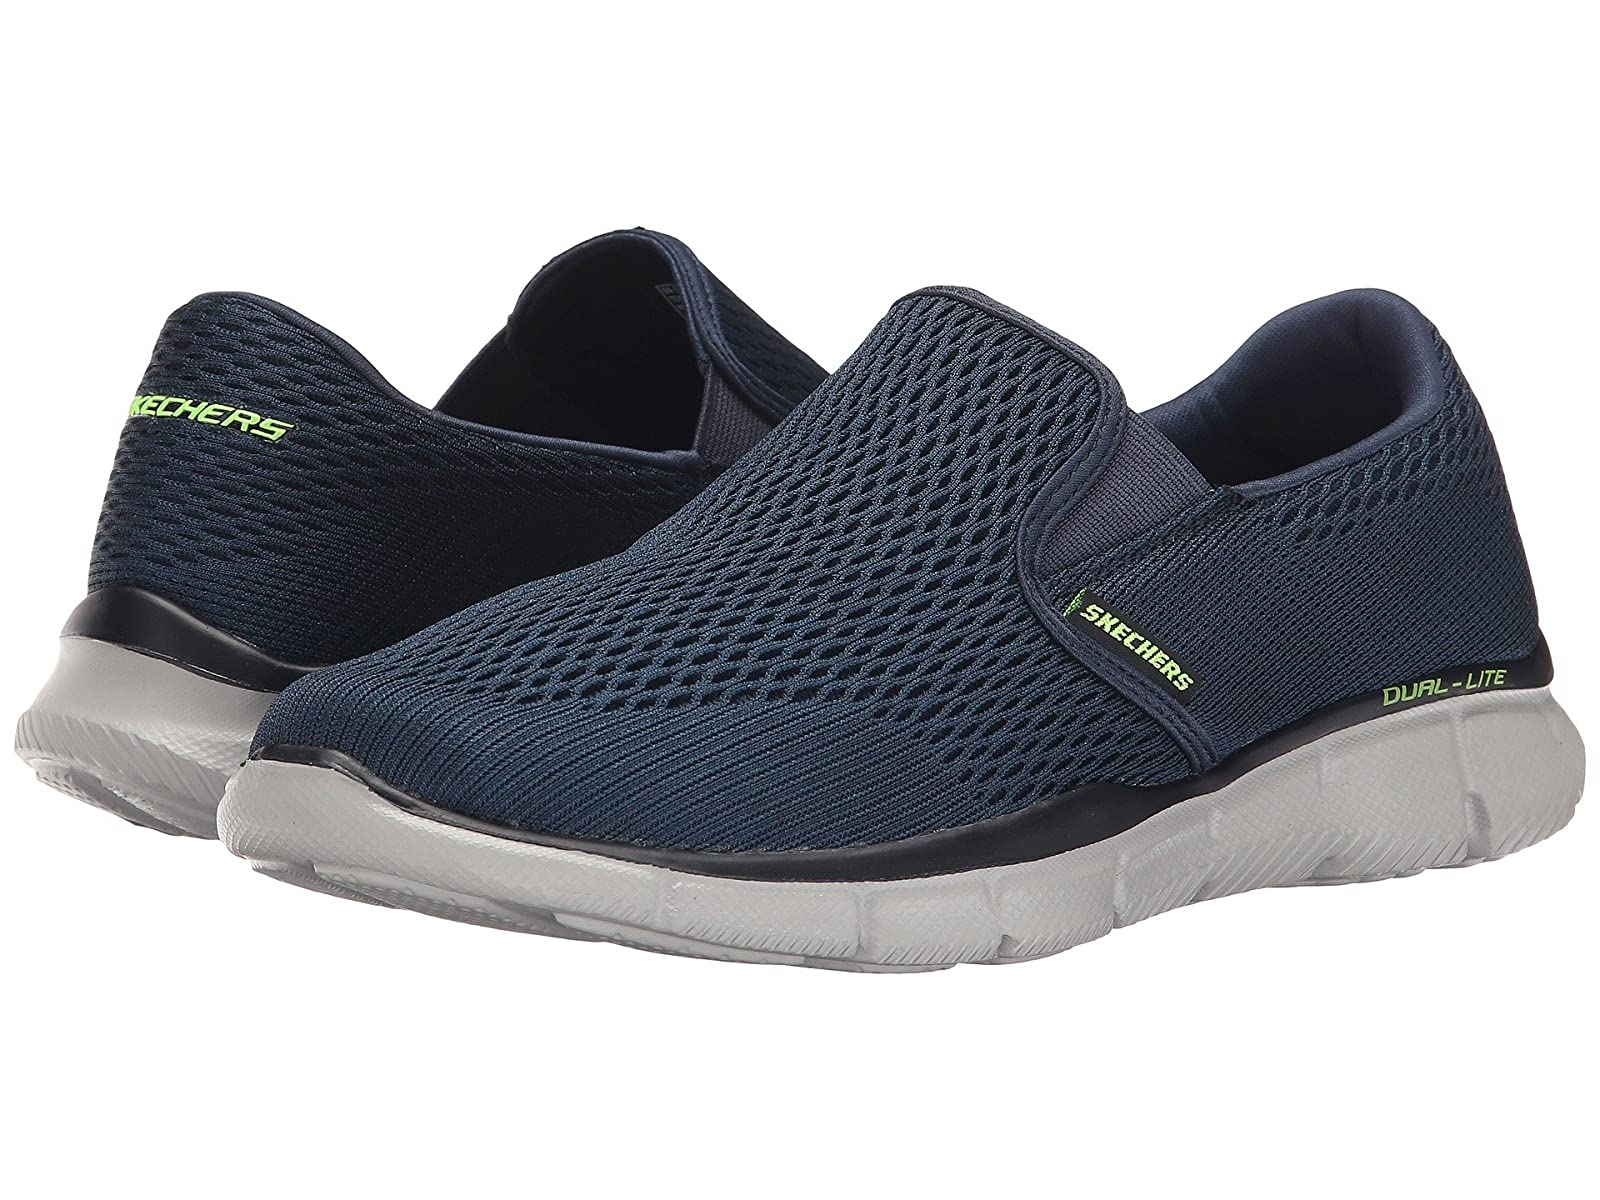 Gentlemen/Ladies:SKECHERS Equalizer Double price Play:Low price Double daily use 874738